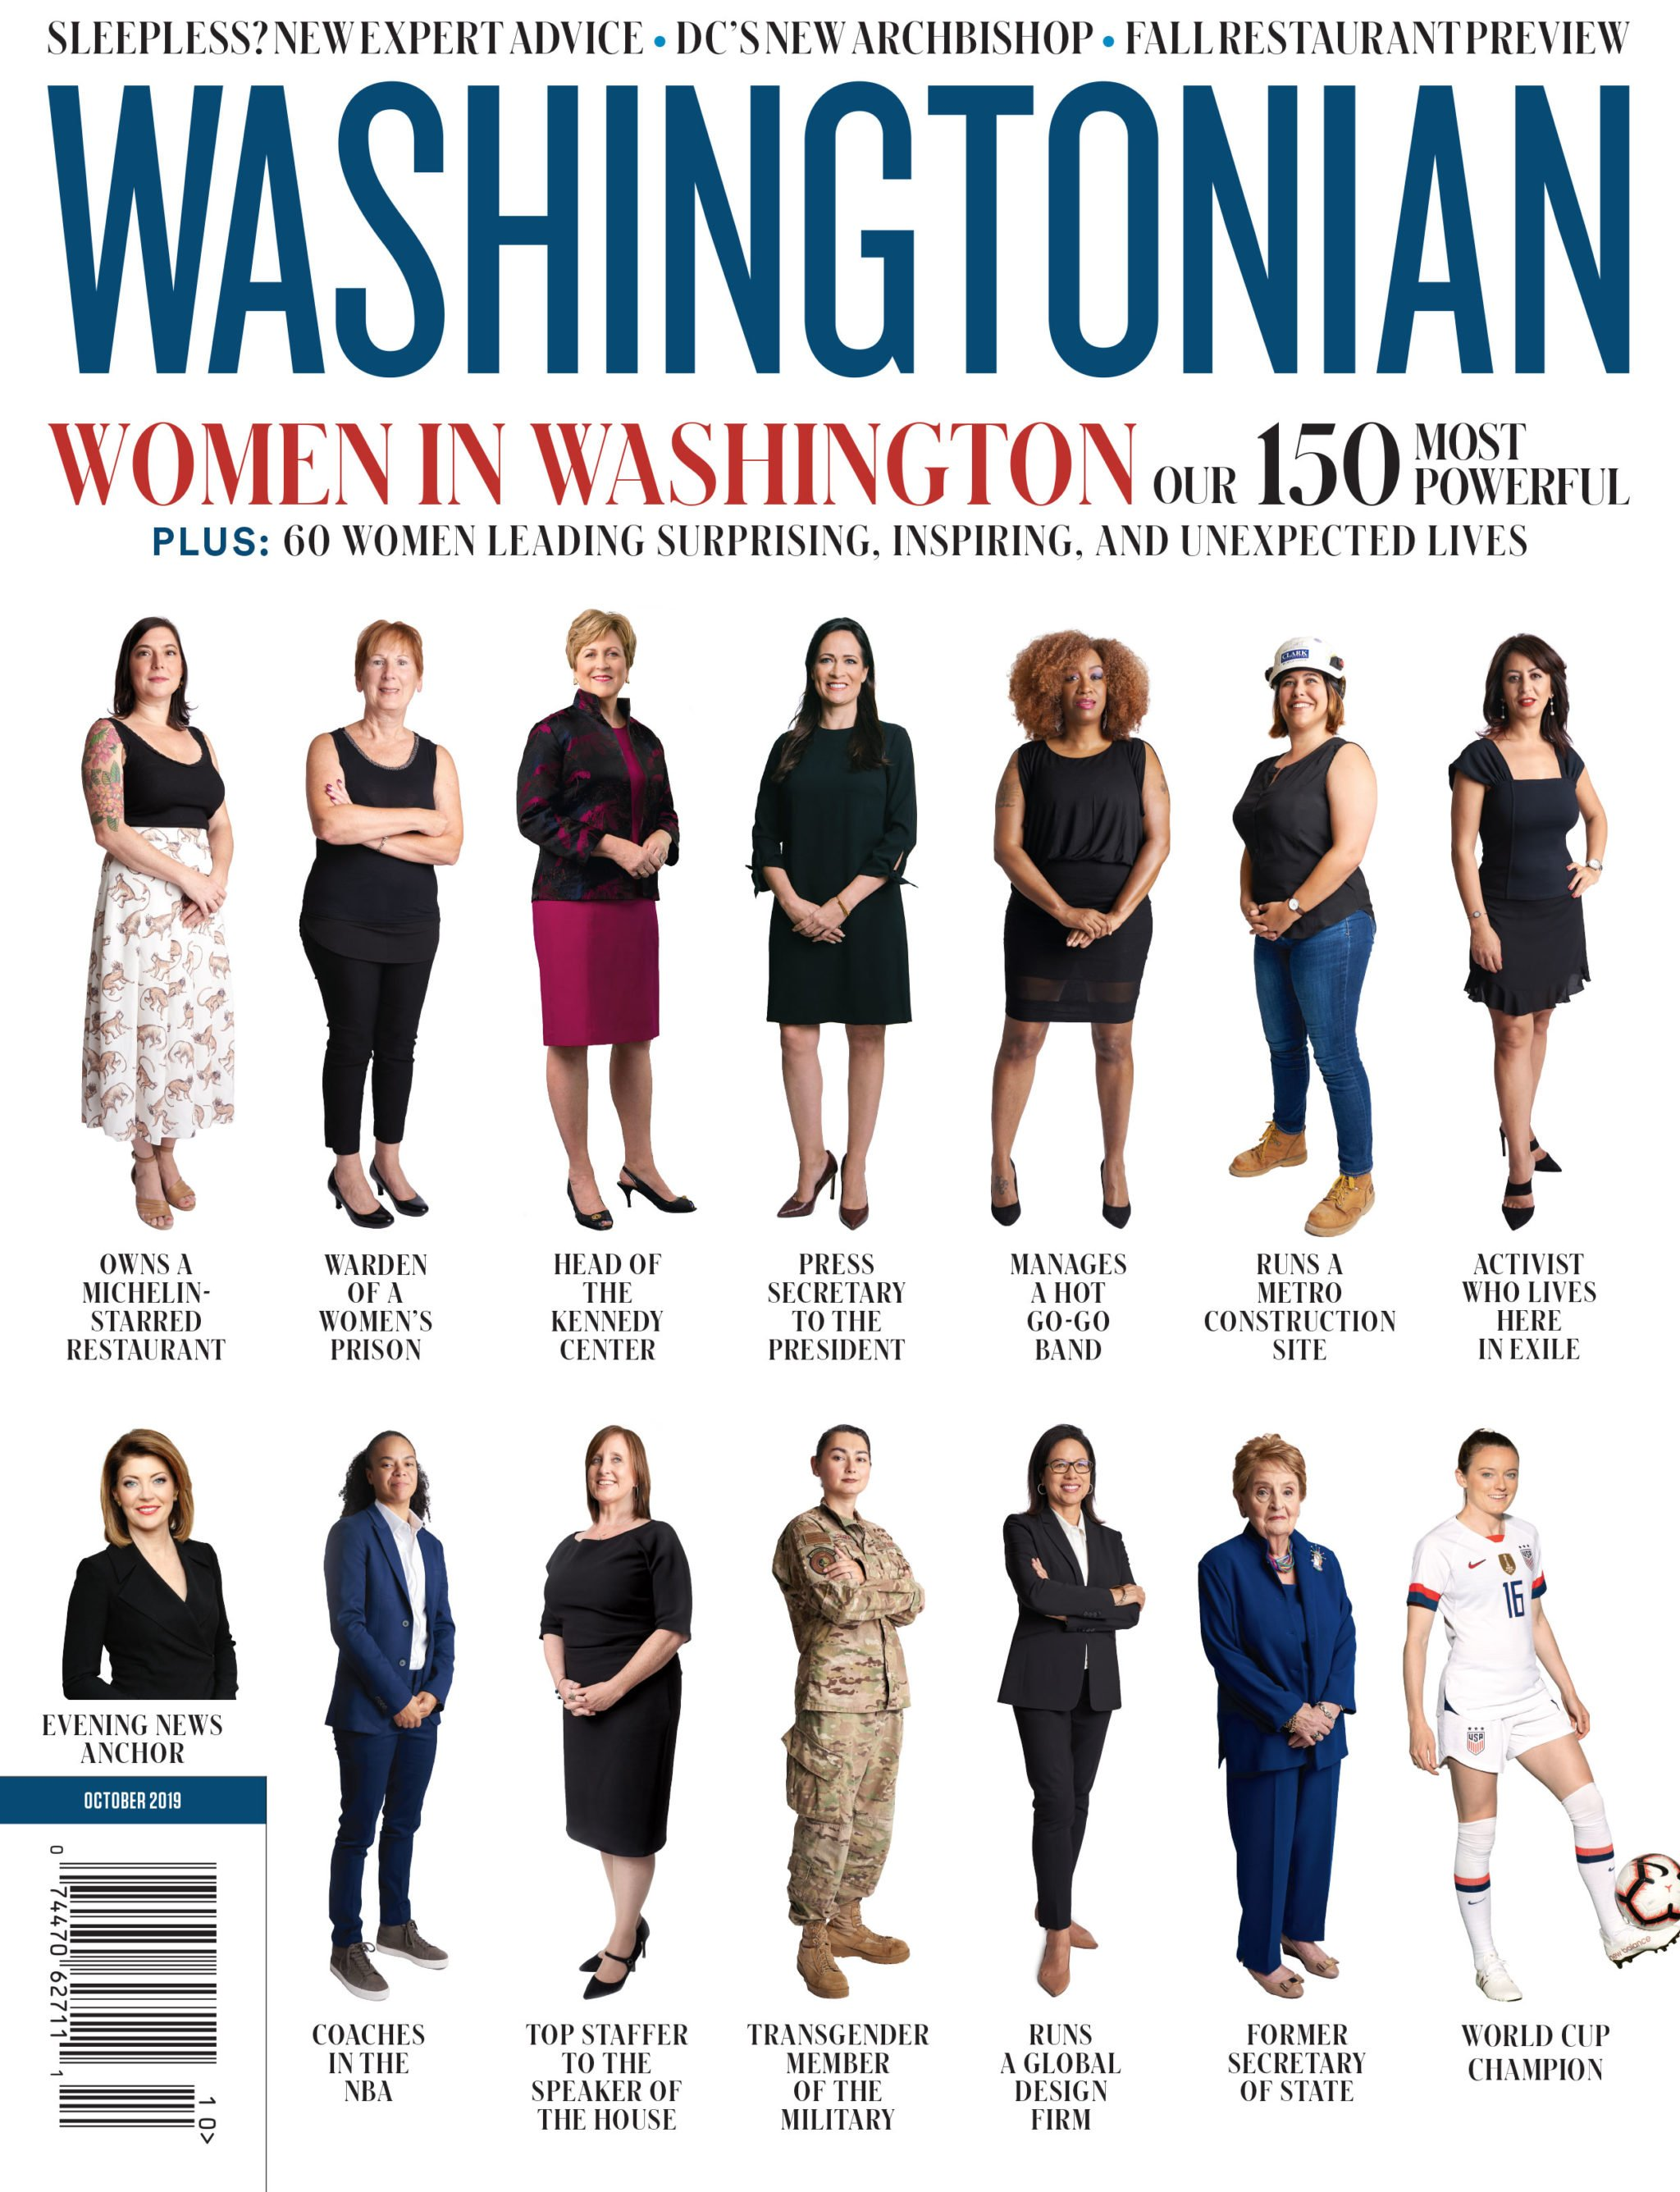 October 2019: Women in Washington